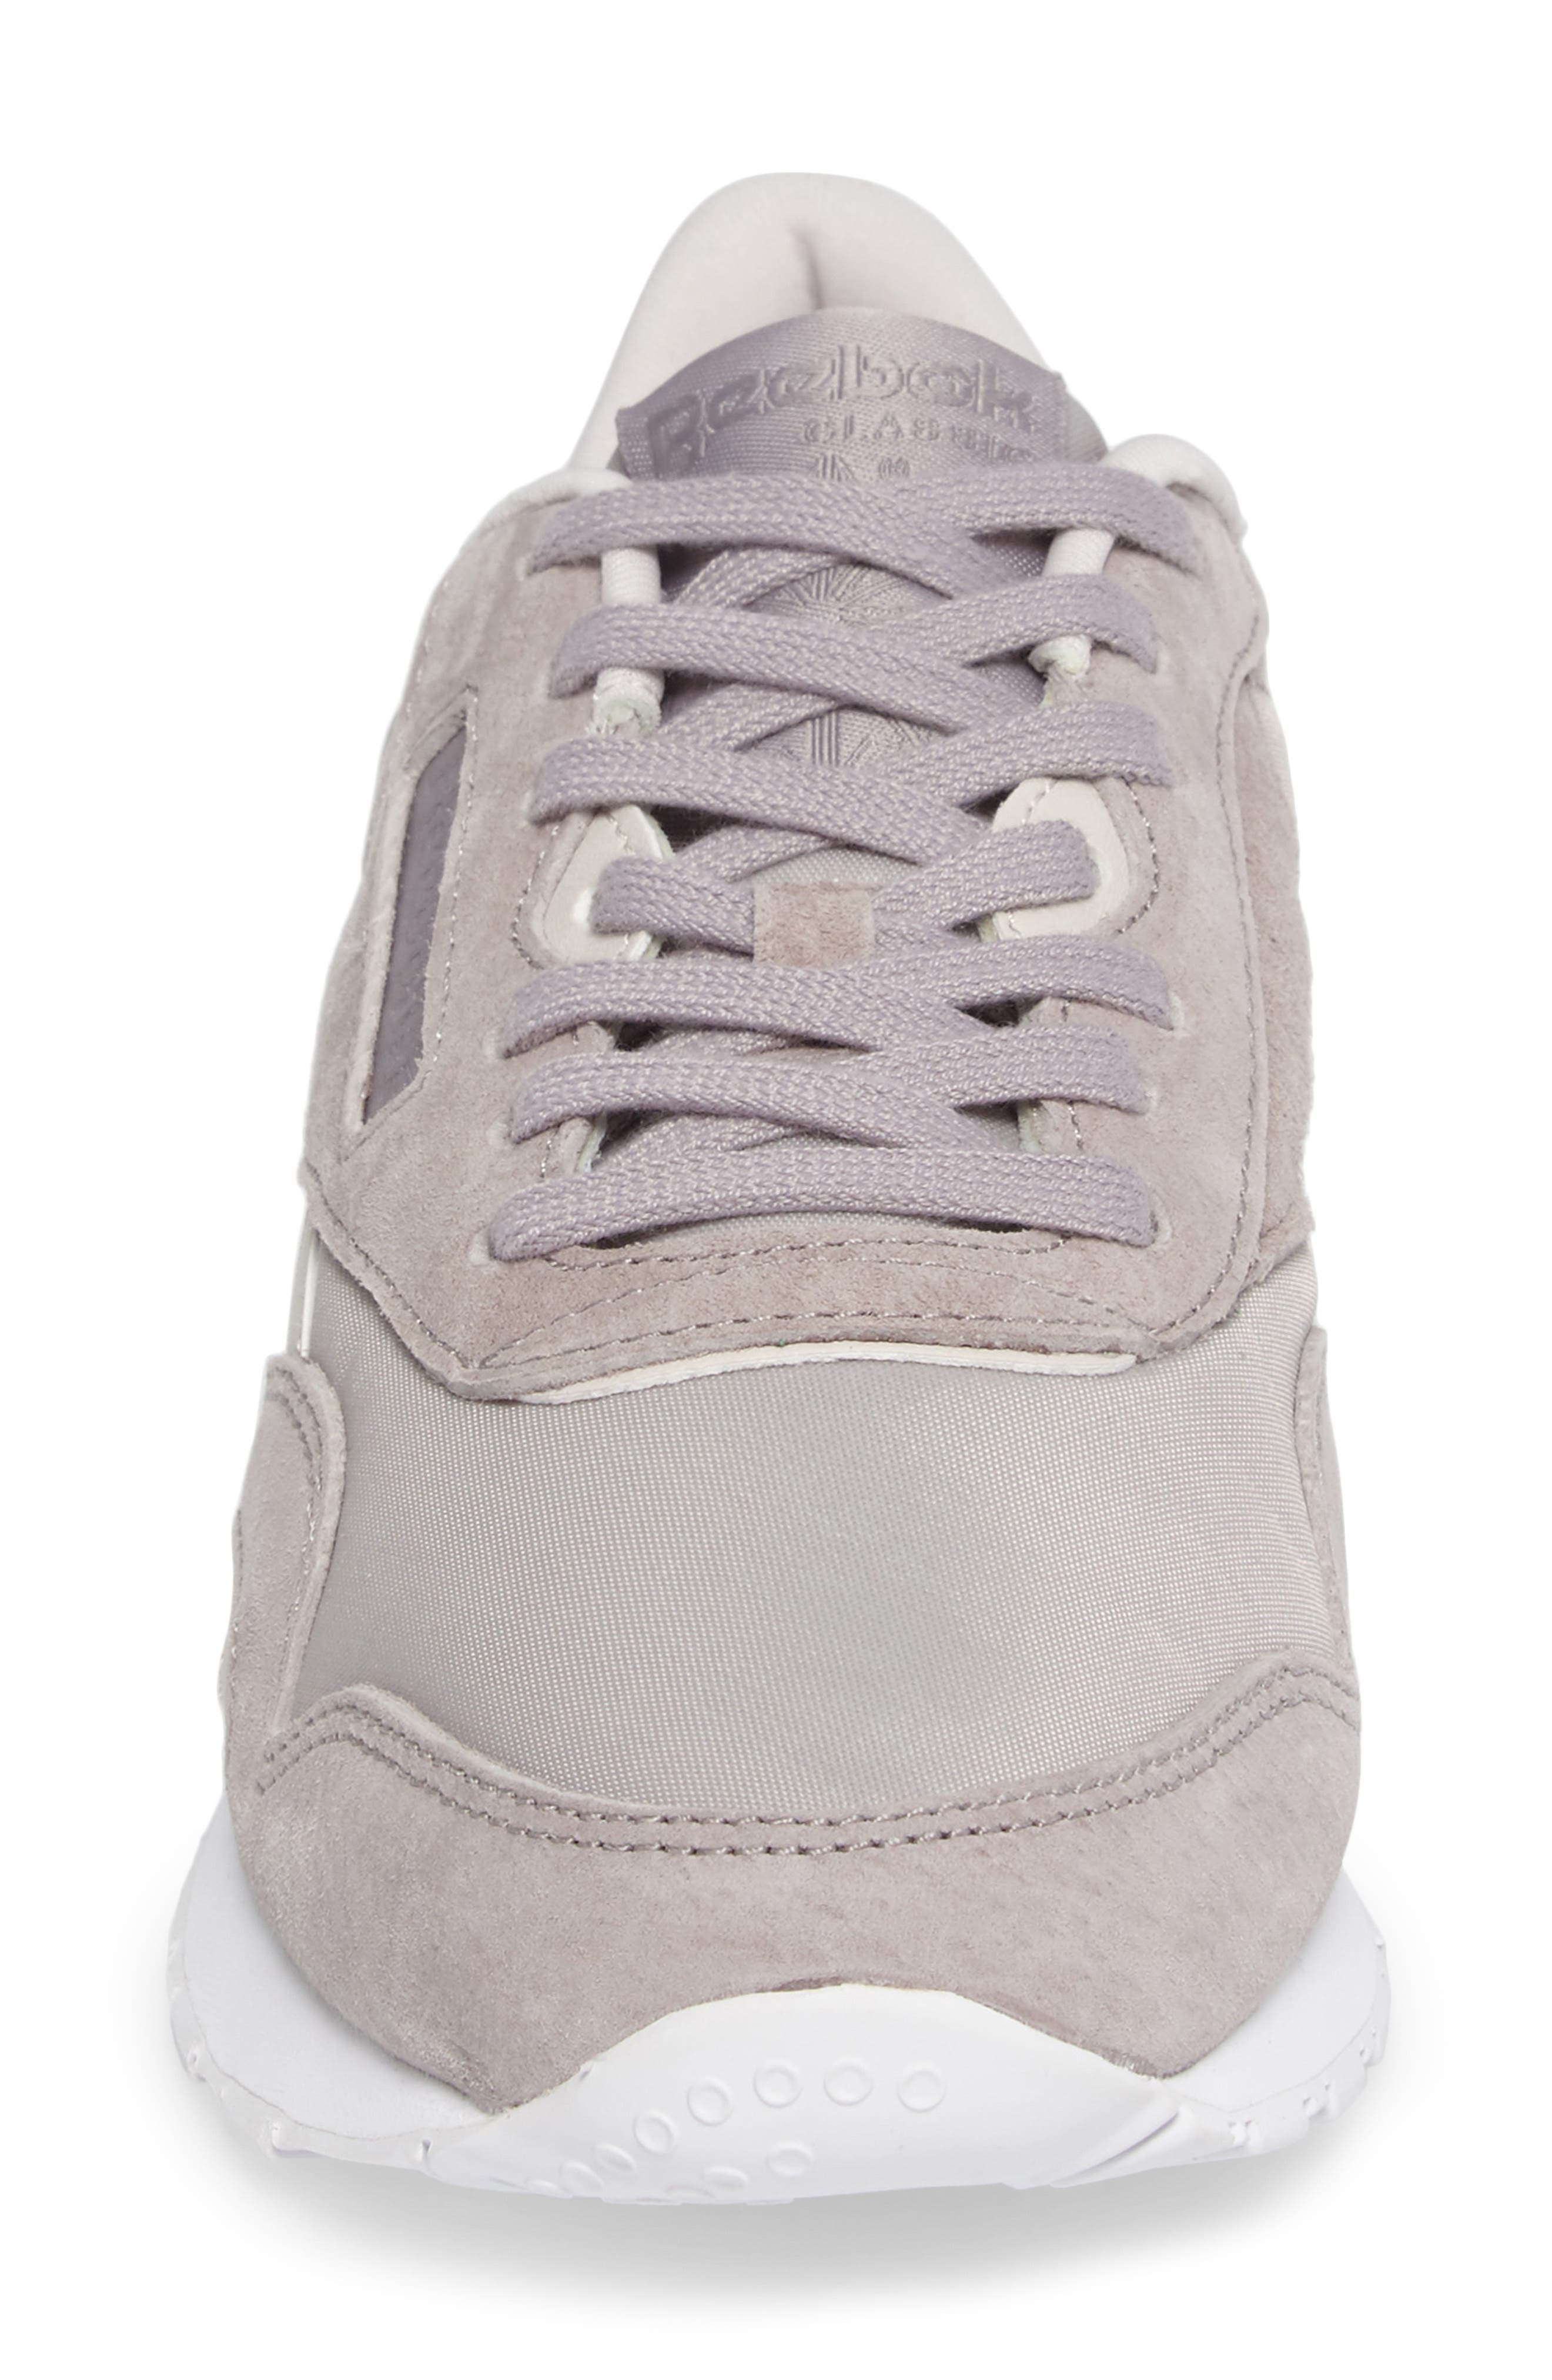 x FACE Stockholm Classic Sneaker,                             Alternate thumbnail 4, color,                             020